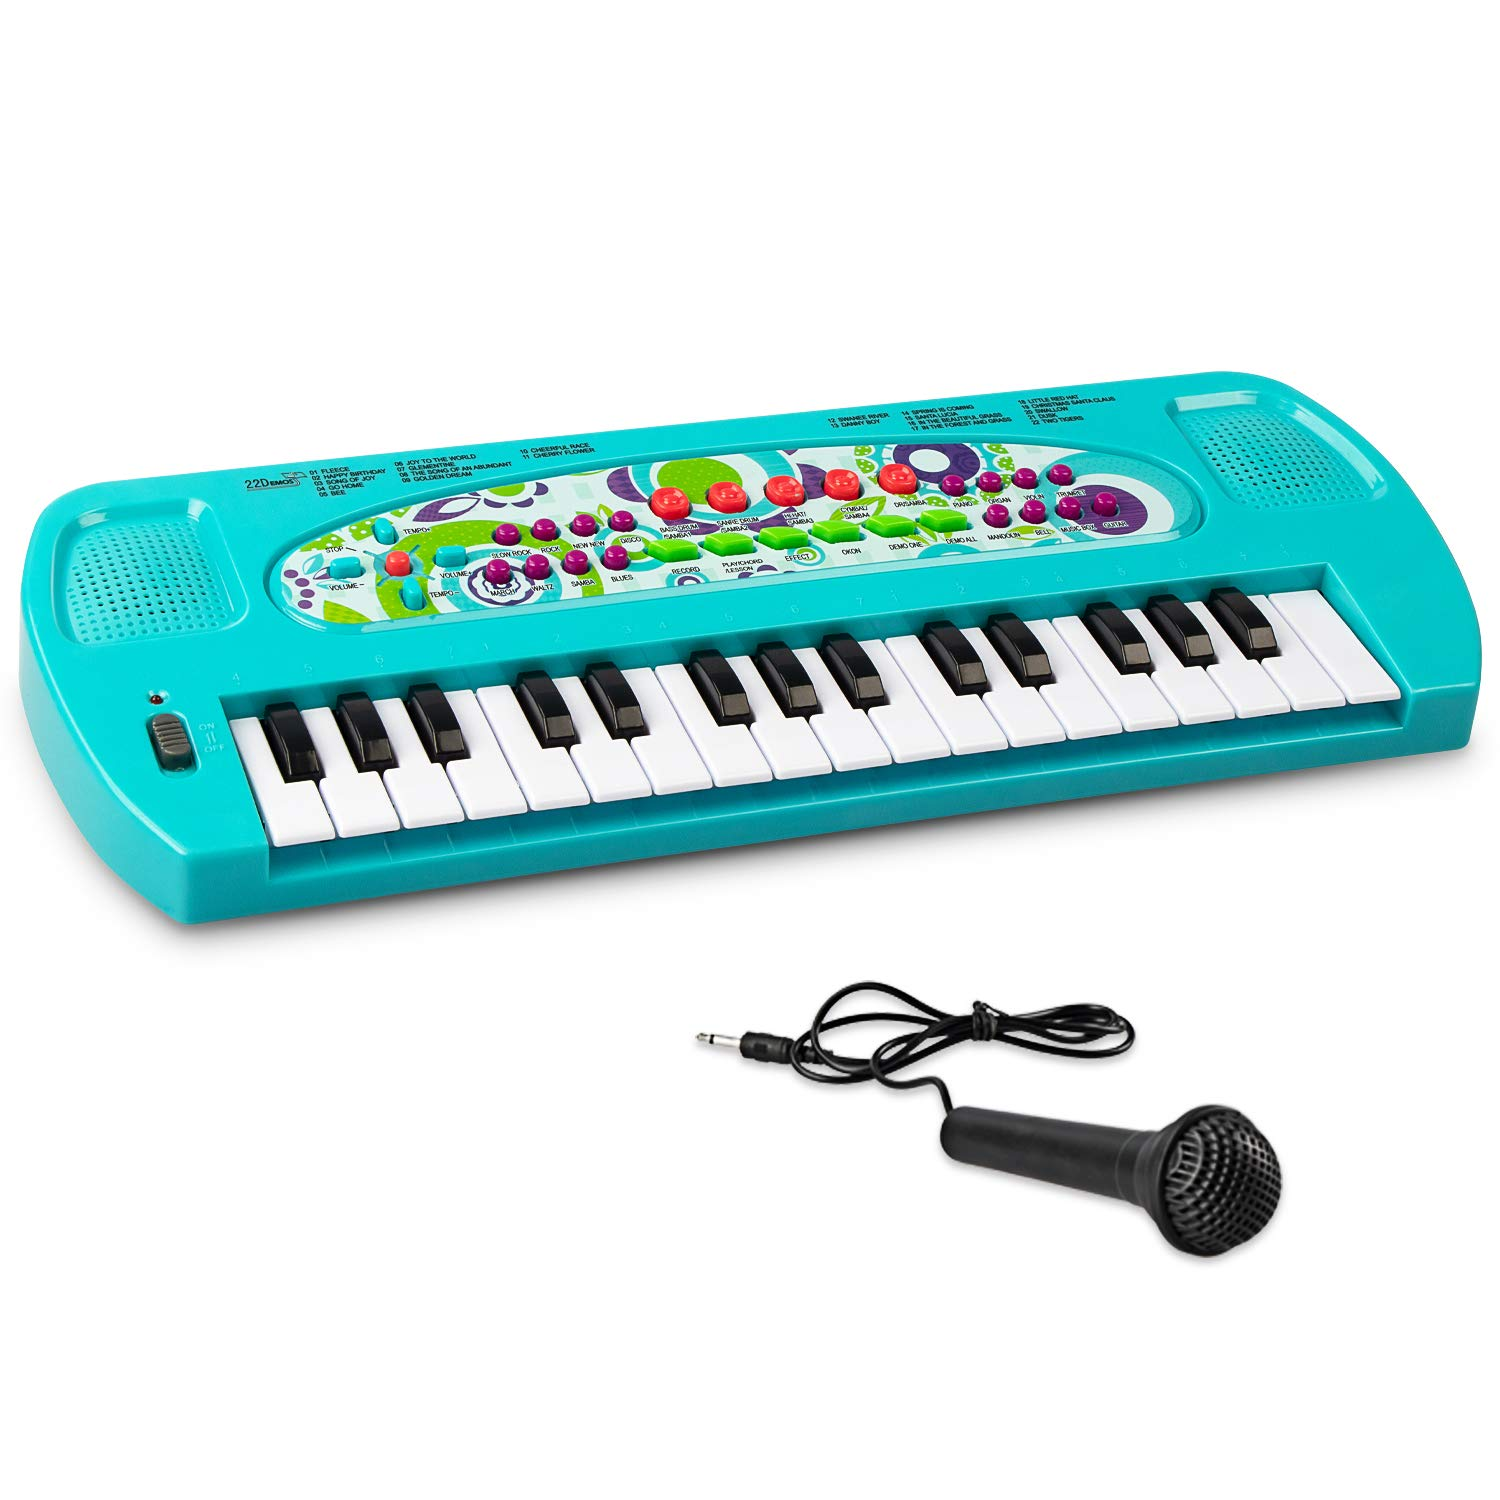 SAOCOOL Piano Keyboard, 32 Keys Multifunction Electronic Kids Toy Piano keyboard Music child piano keyboard for toddler with Microphone (Blue) by SAOCOOL